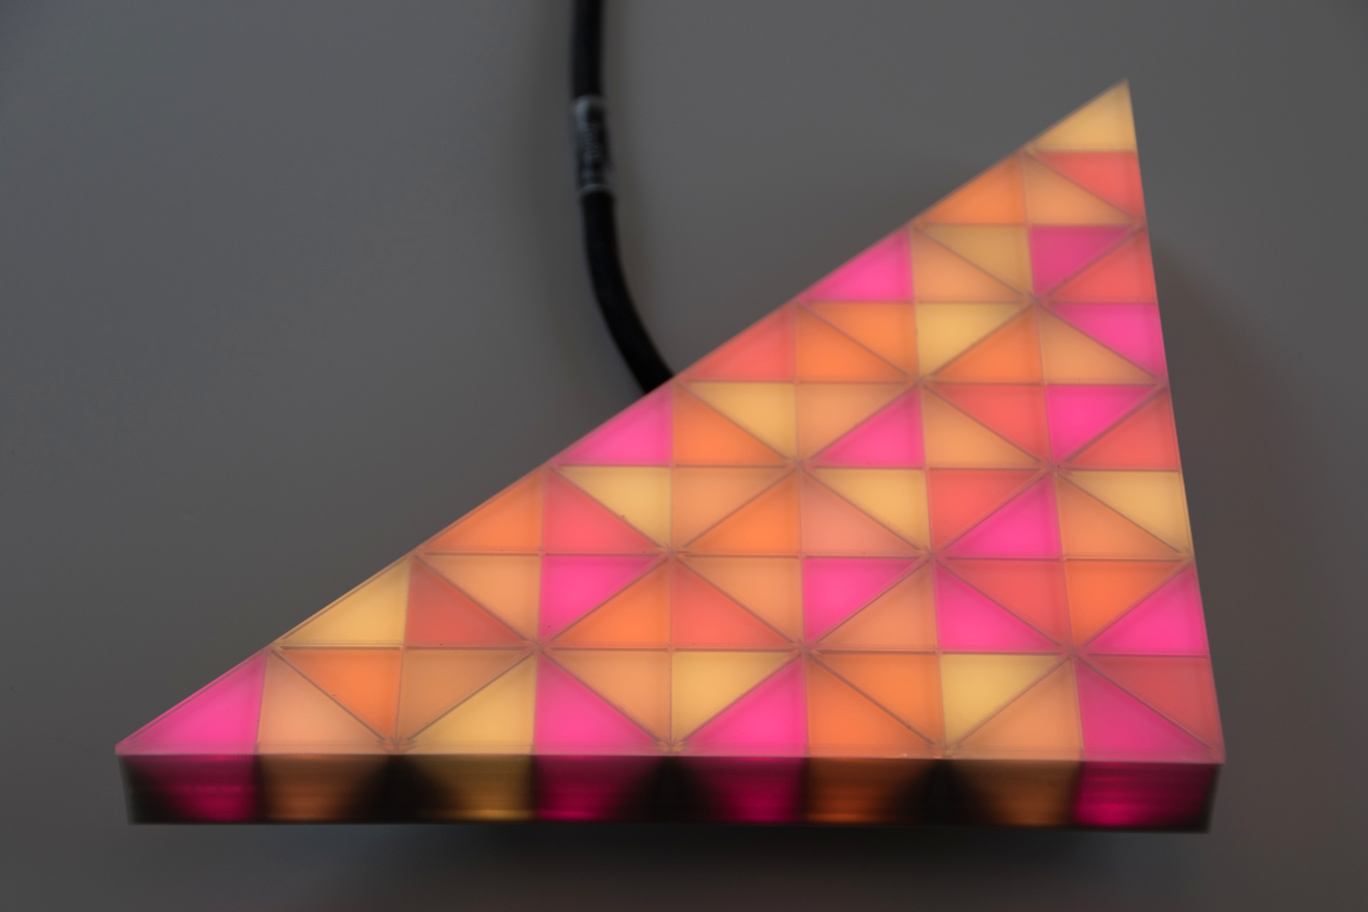 fully video capable, orange glowing LED module in a triangular shape